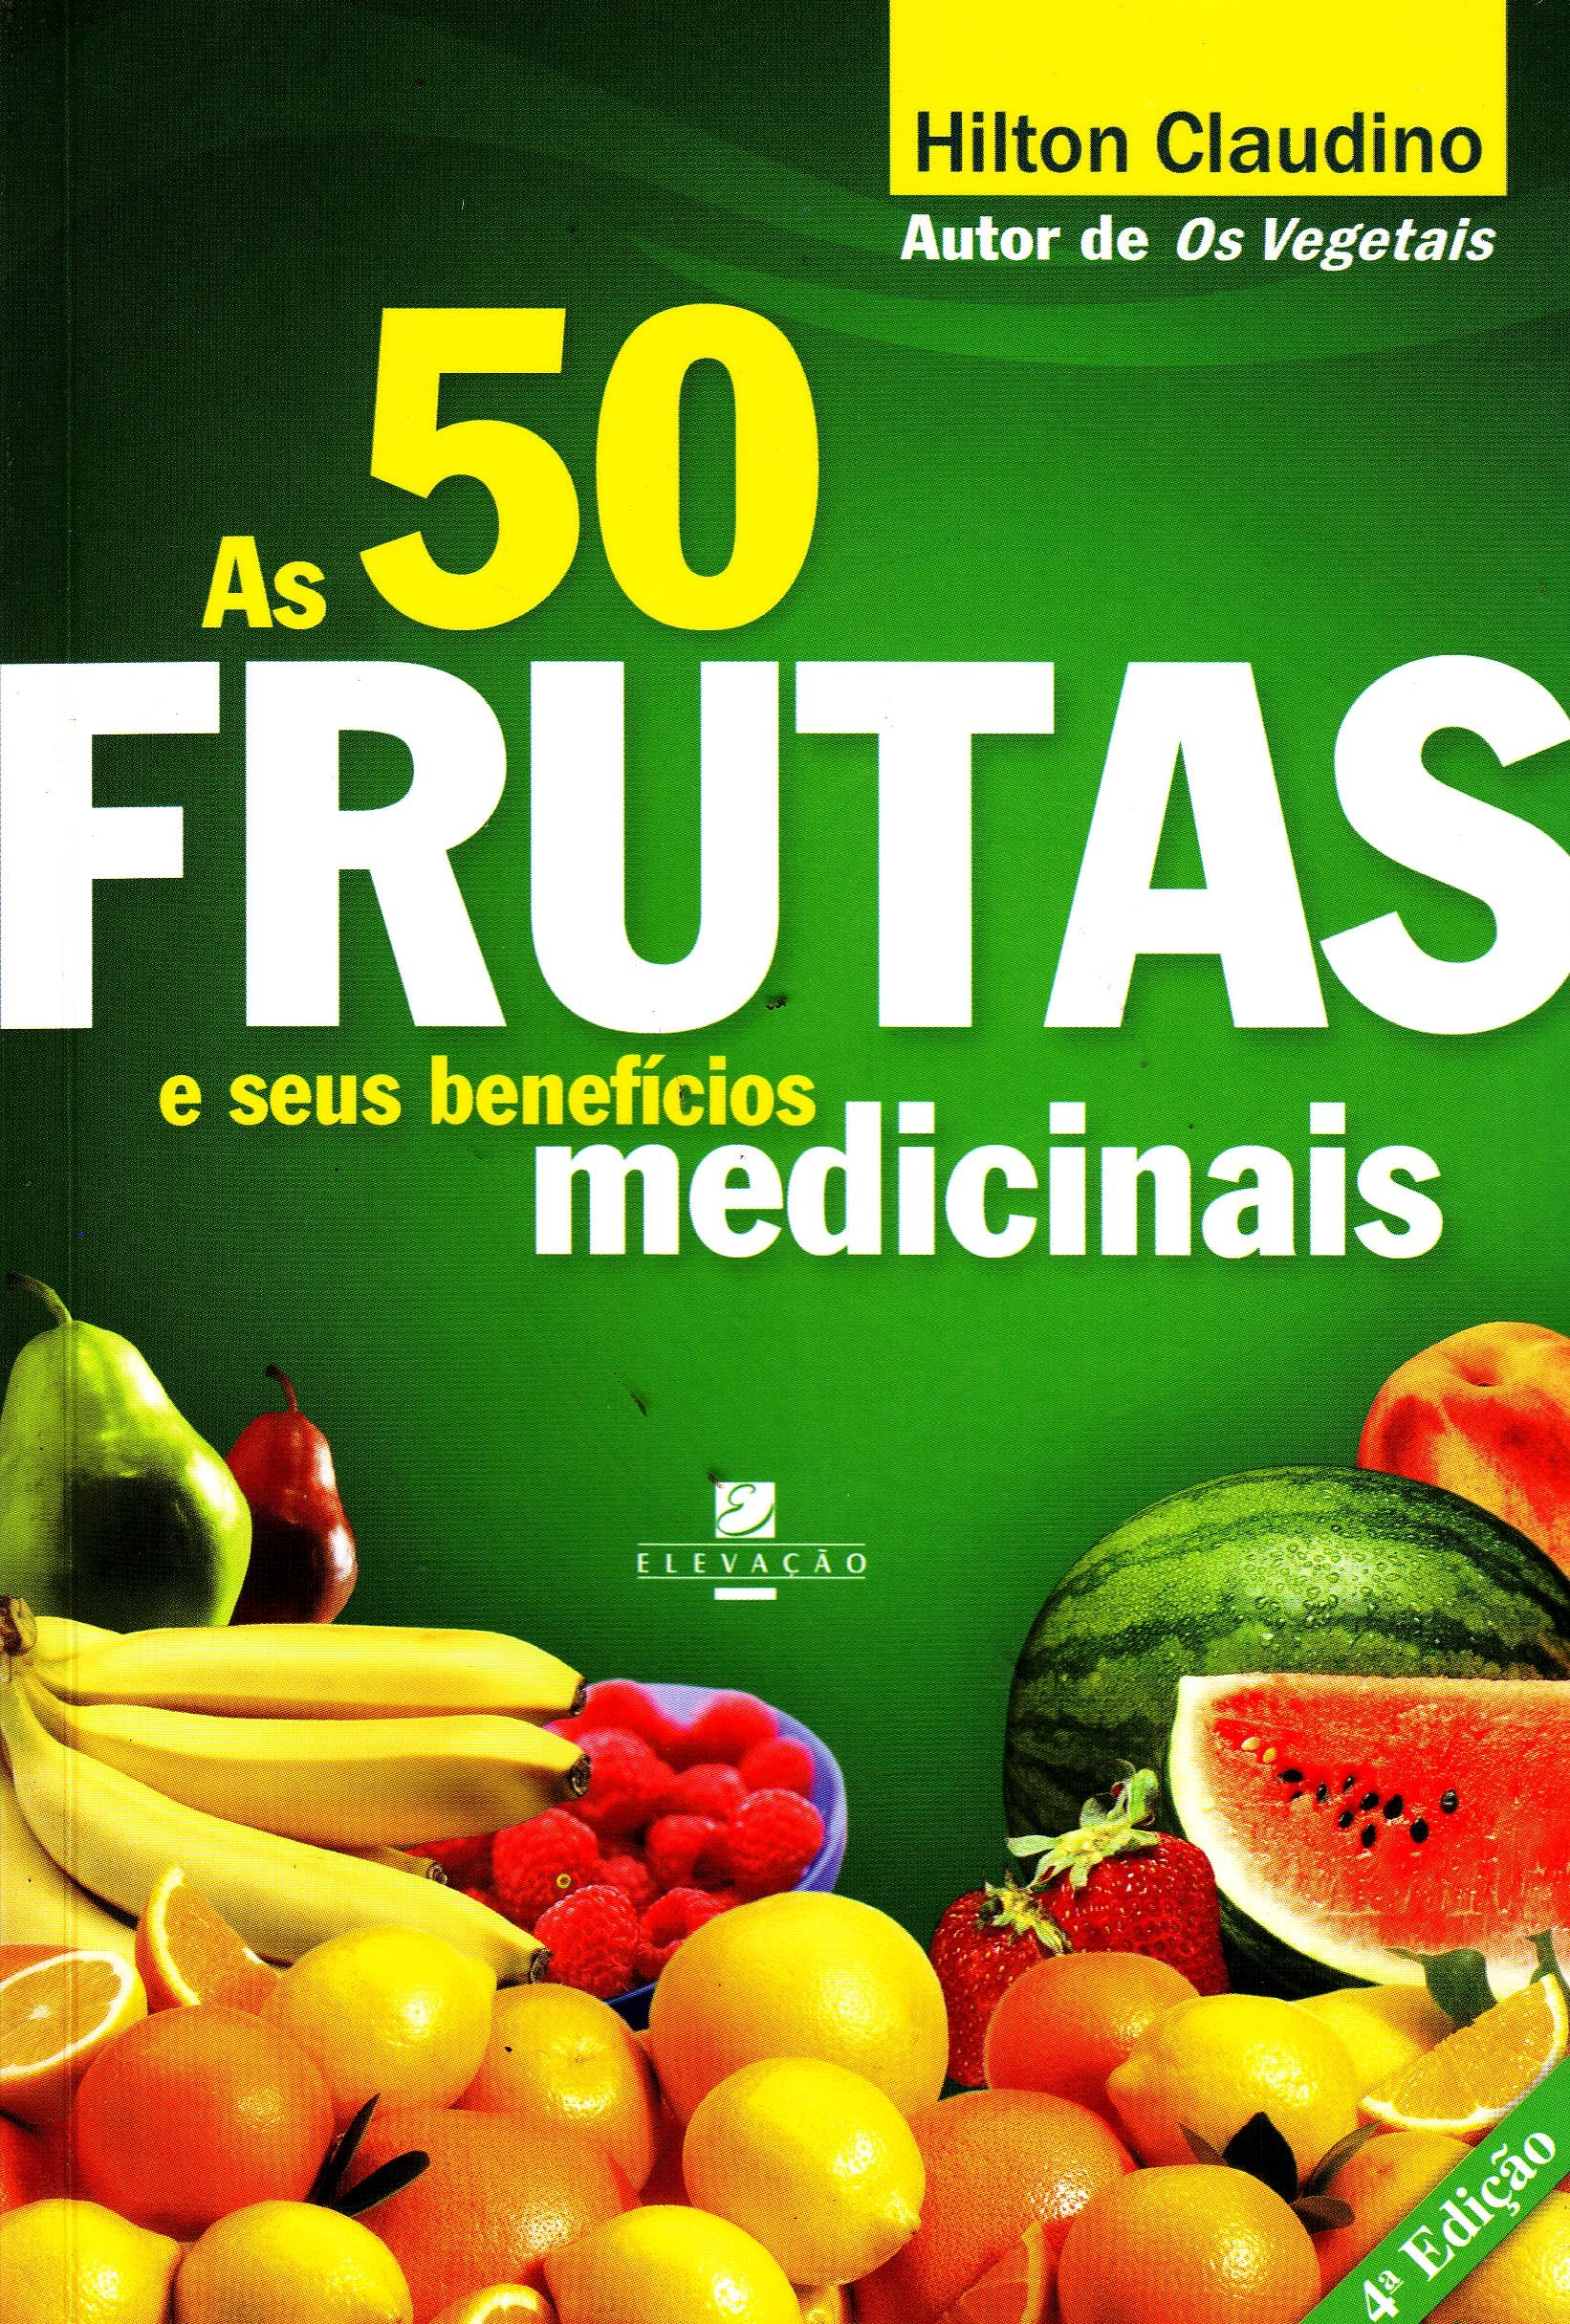 50 Frutas e Seus Beneficios Medicinais, As: Hilton Claudino, 0: 9788575130889: Amazon.com: Books